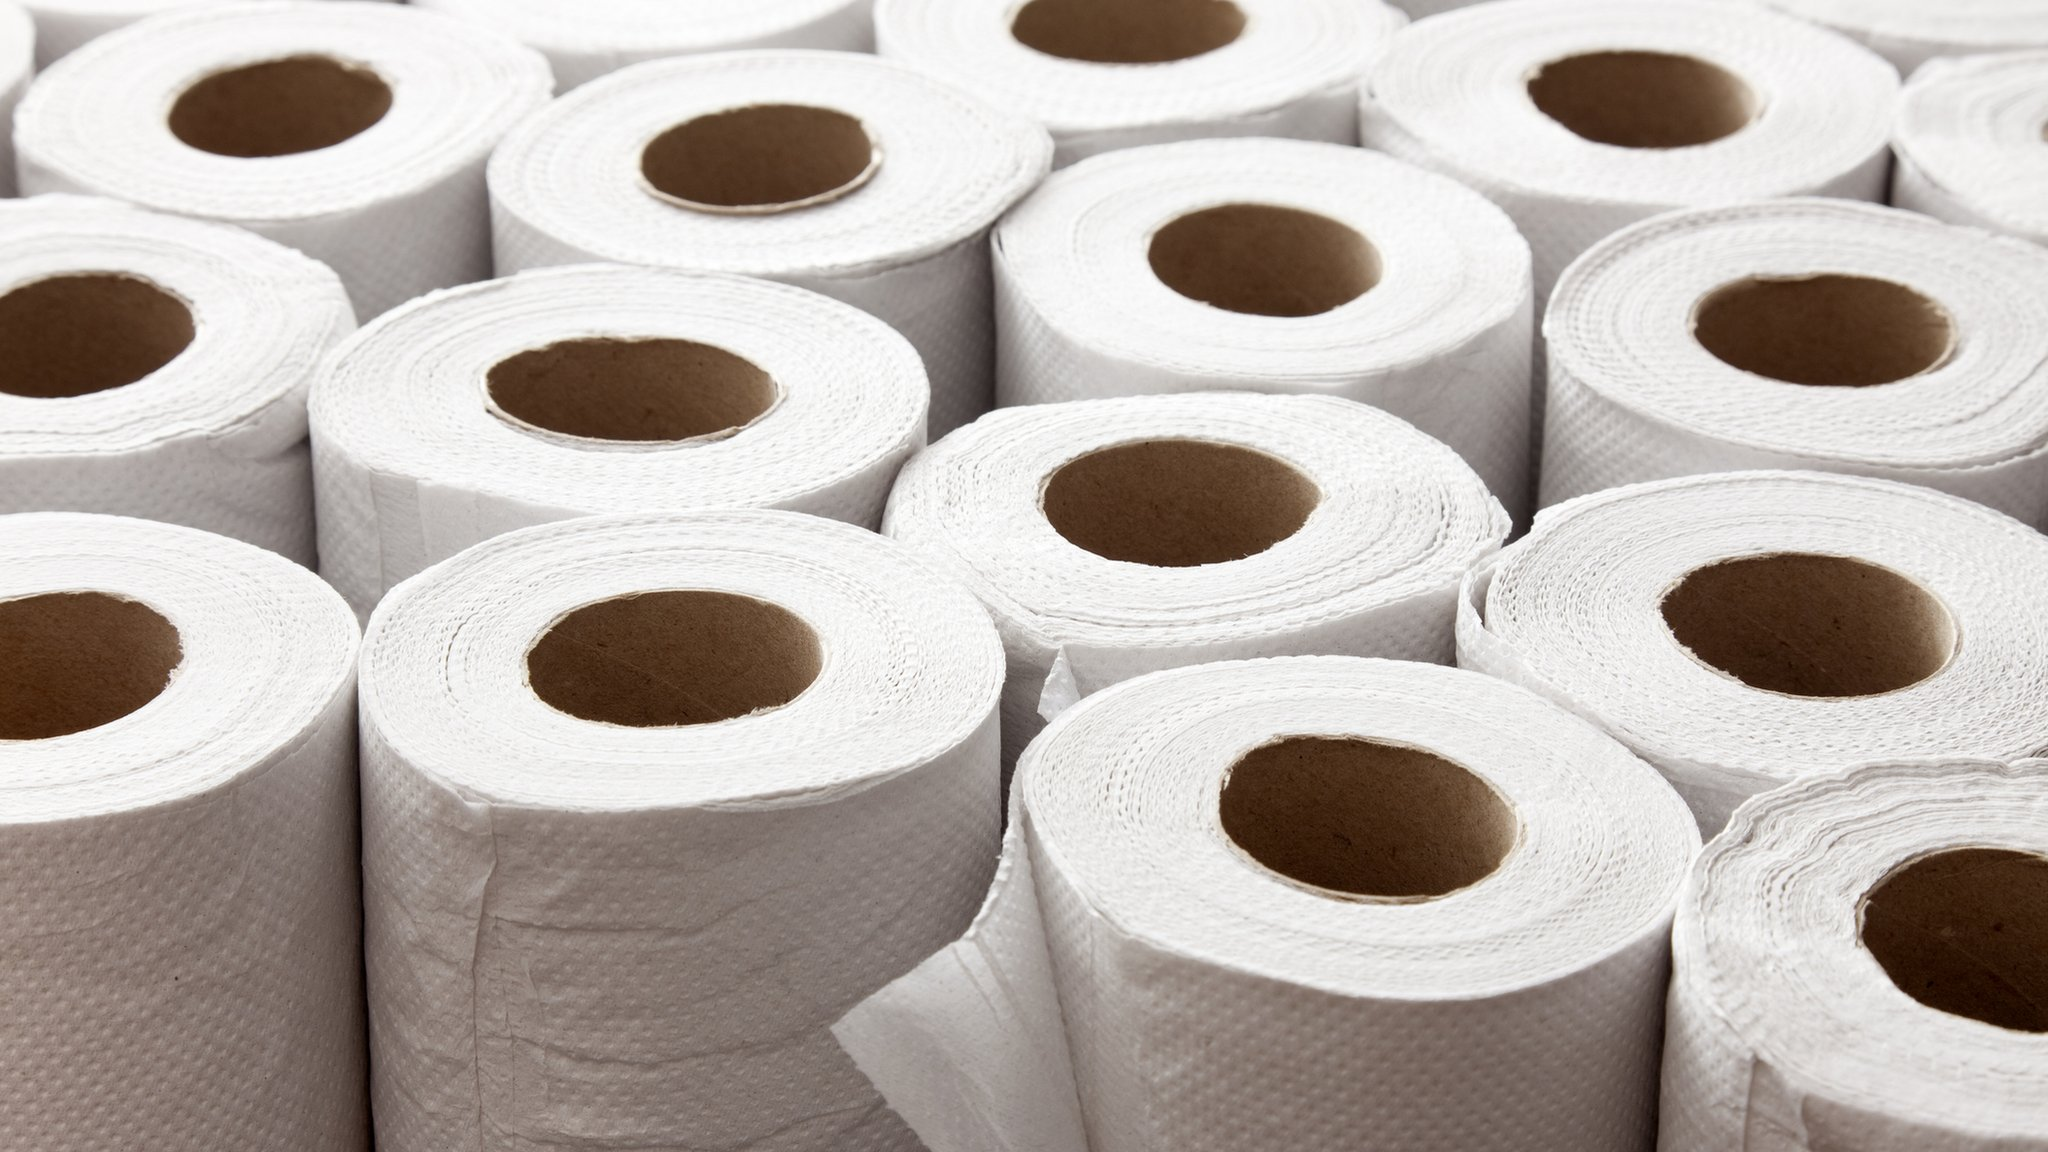 Brexit: Toilet paper maker stockpiles in a case of no-deal